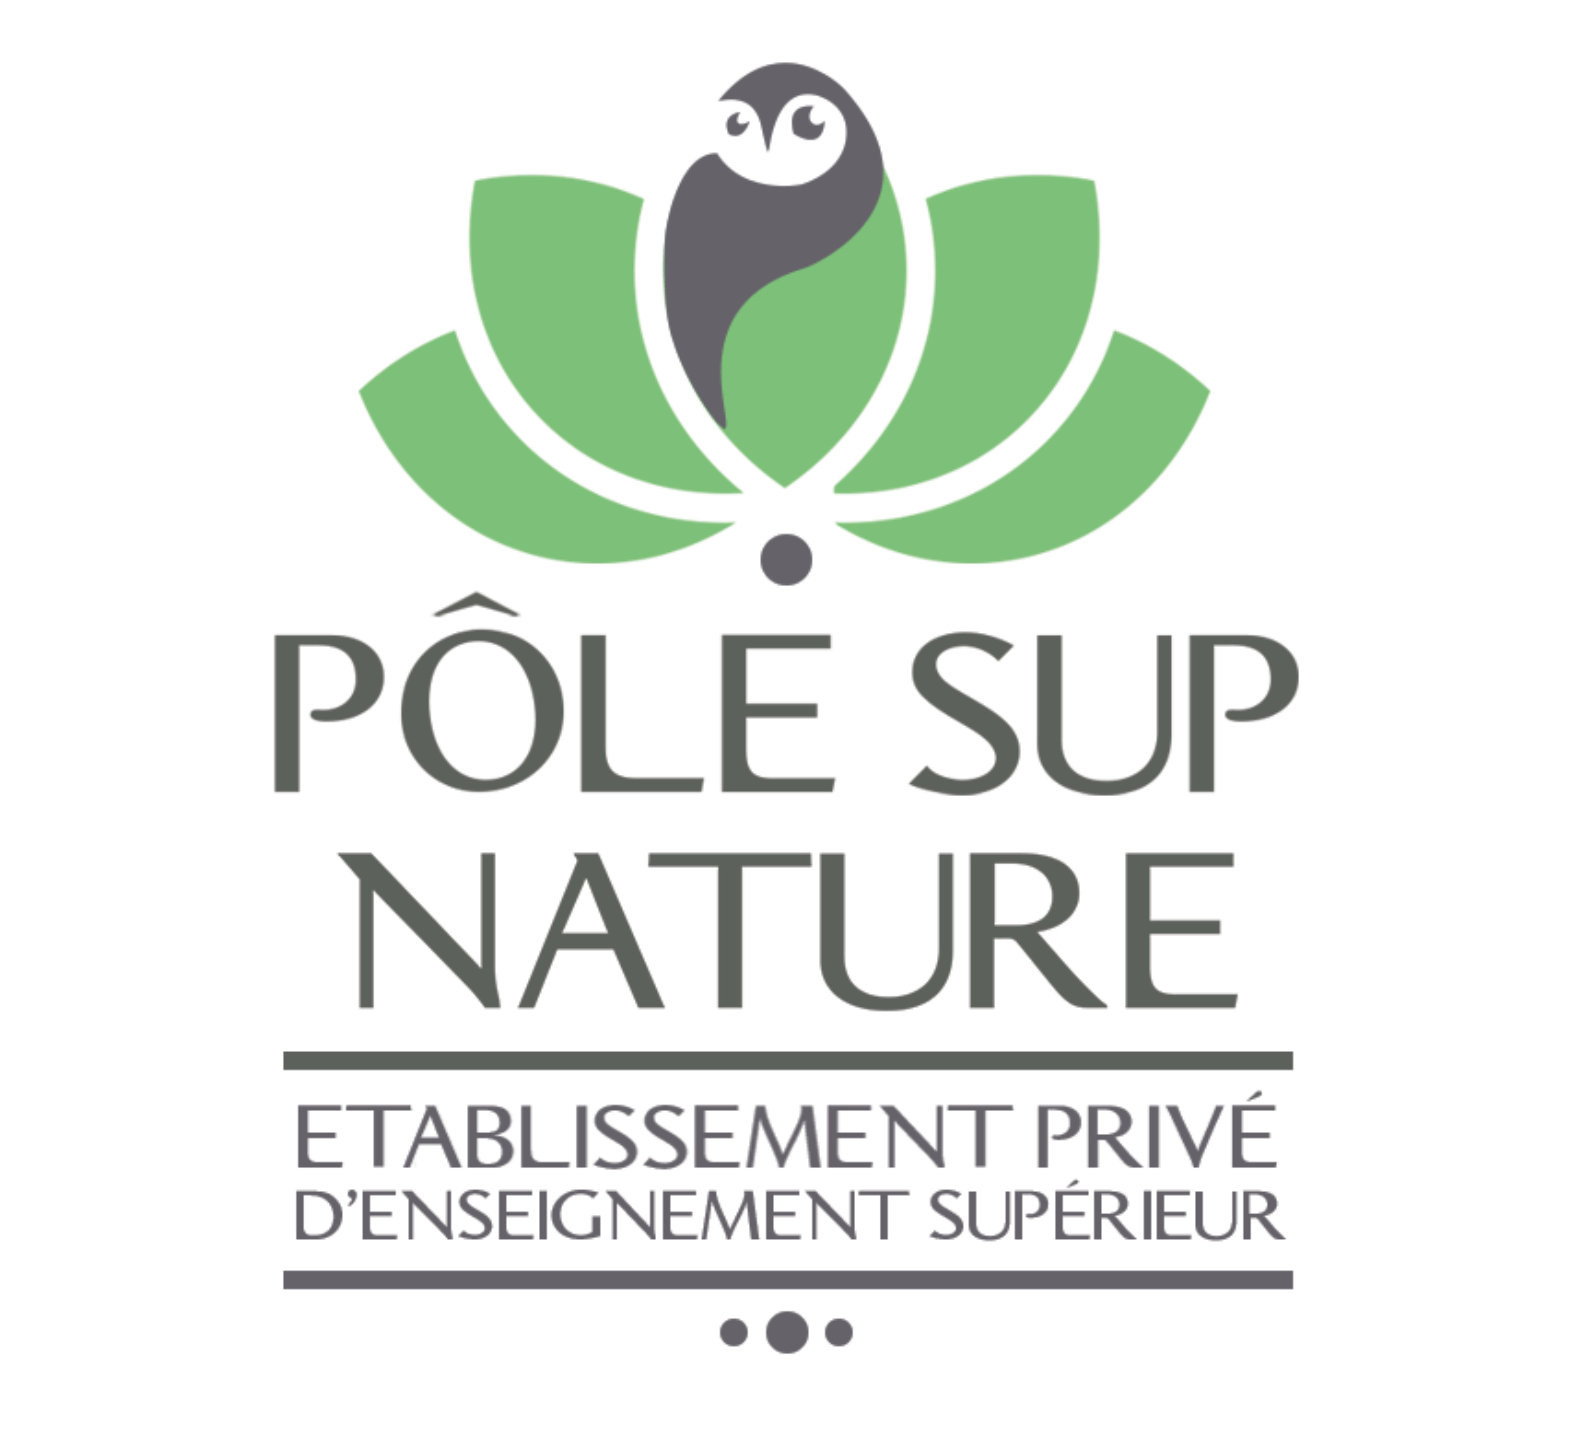 Pole Sup Nature Radio Campus Montpellier